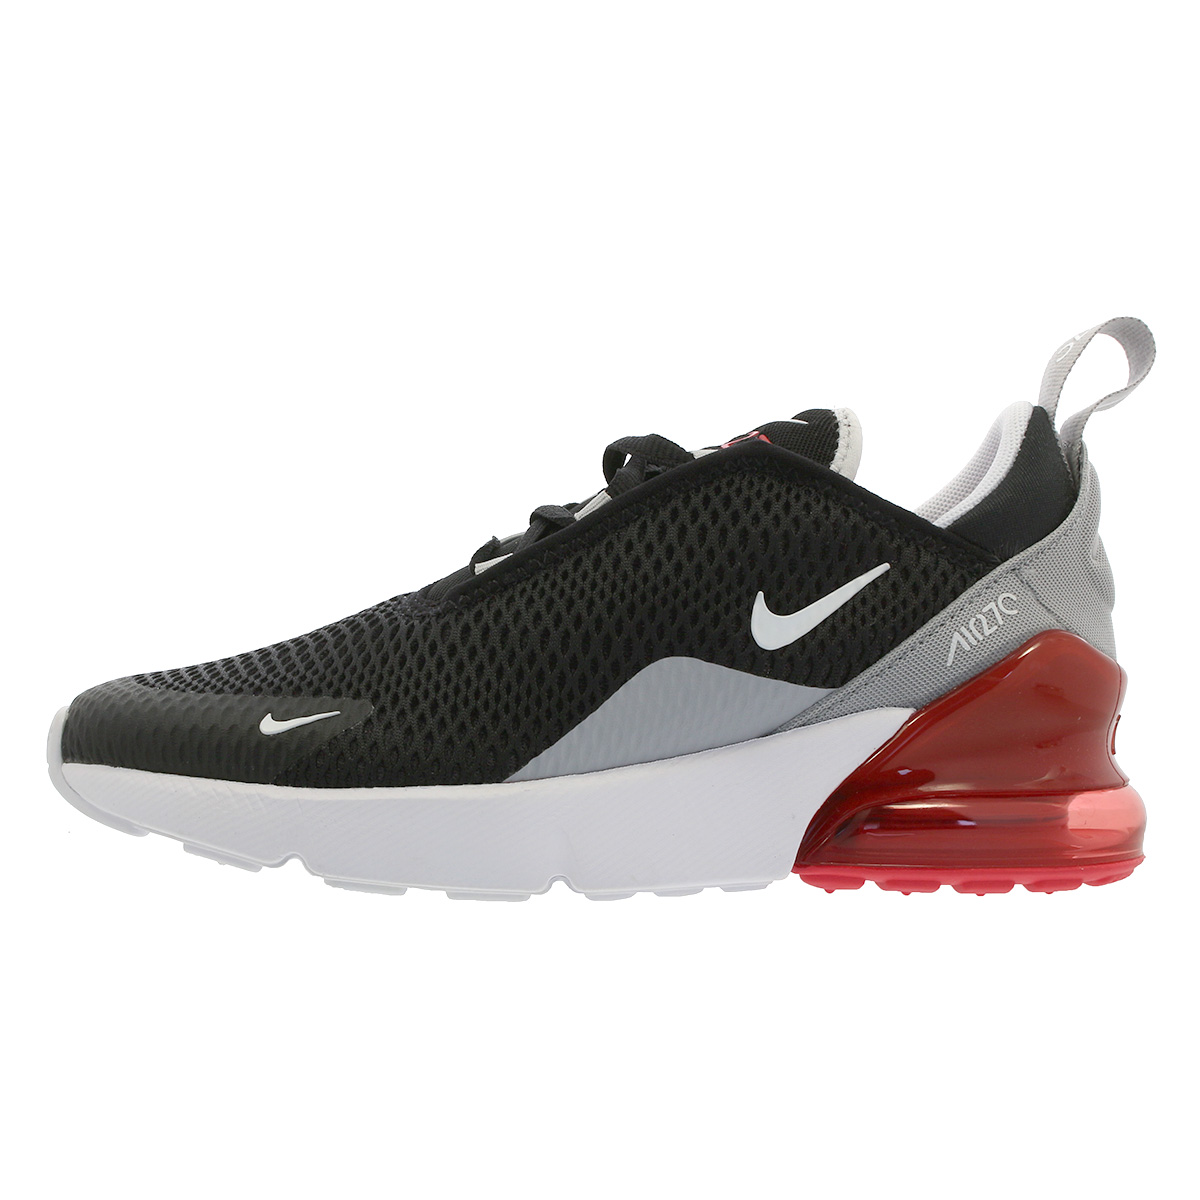 LOWTEX PLUS: NIKE AIR MAX 270 PS Kie Ney AMAX 270 PS BLACK